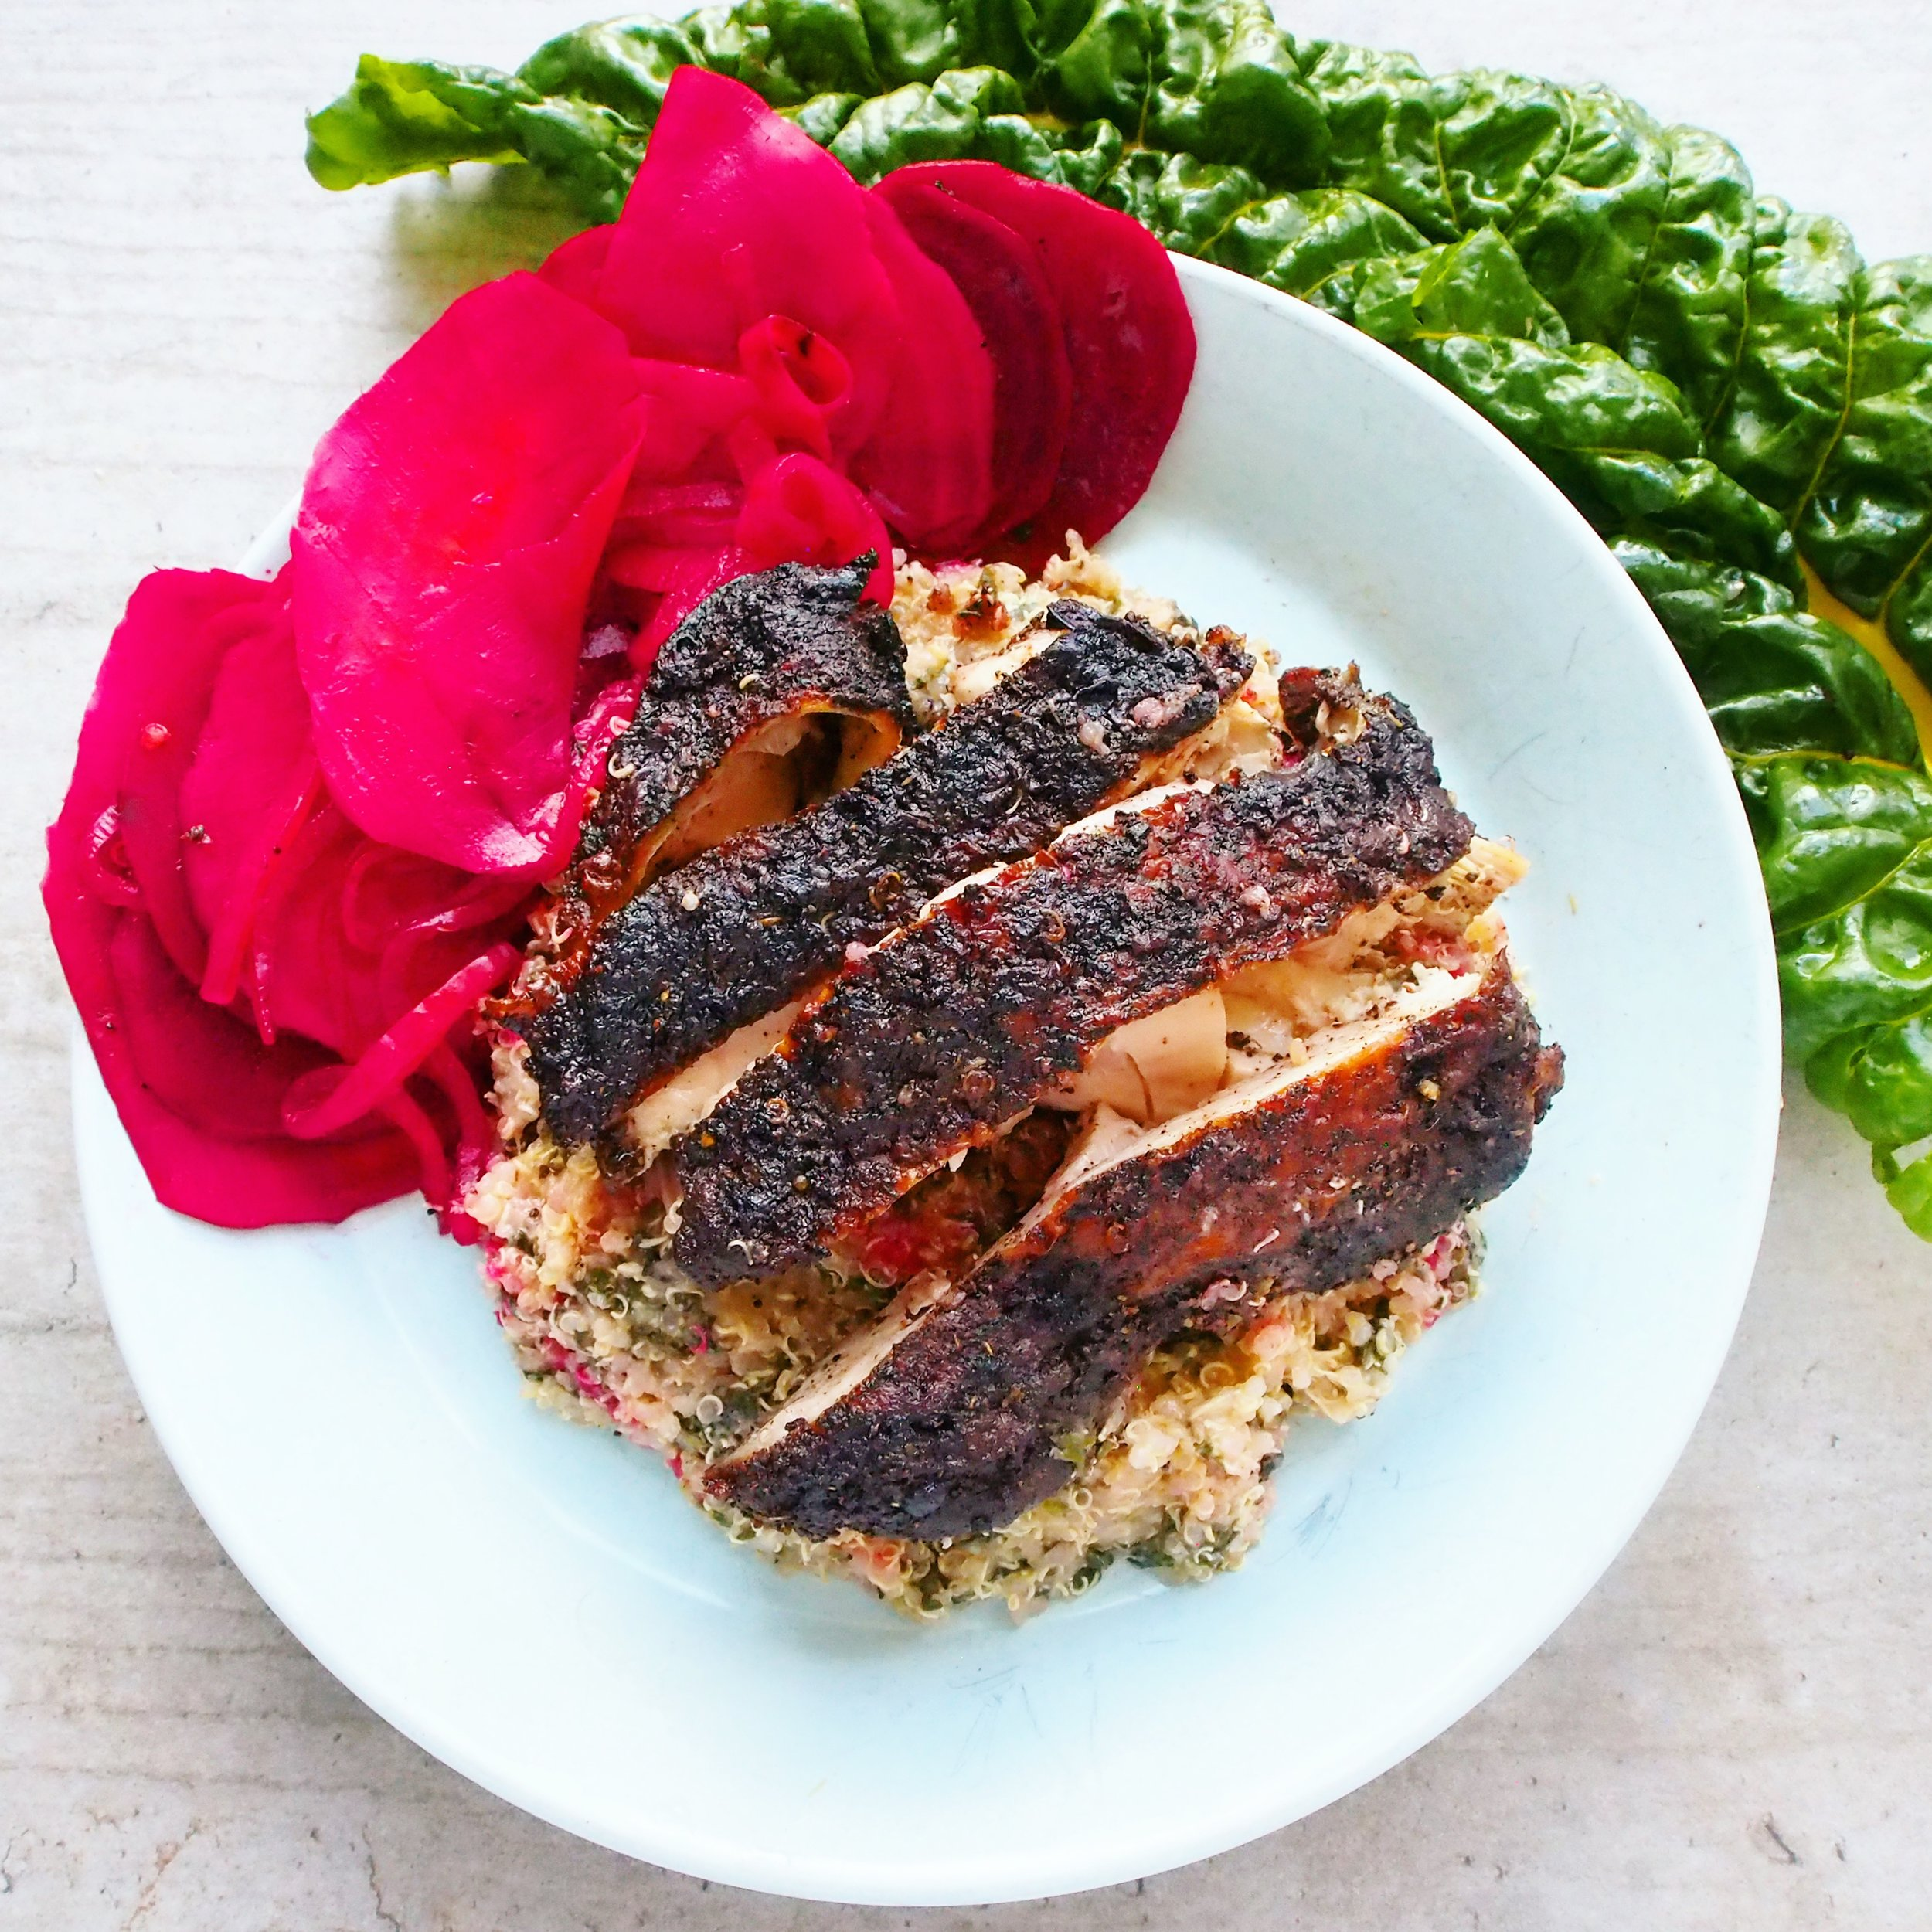 Tea-Rubbed-Chicken-with-Pickled-Beets-&-Swiss-Chard-Quinoa.JPG